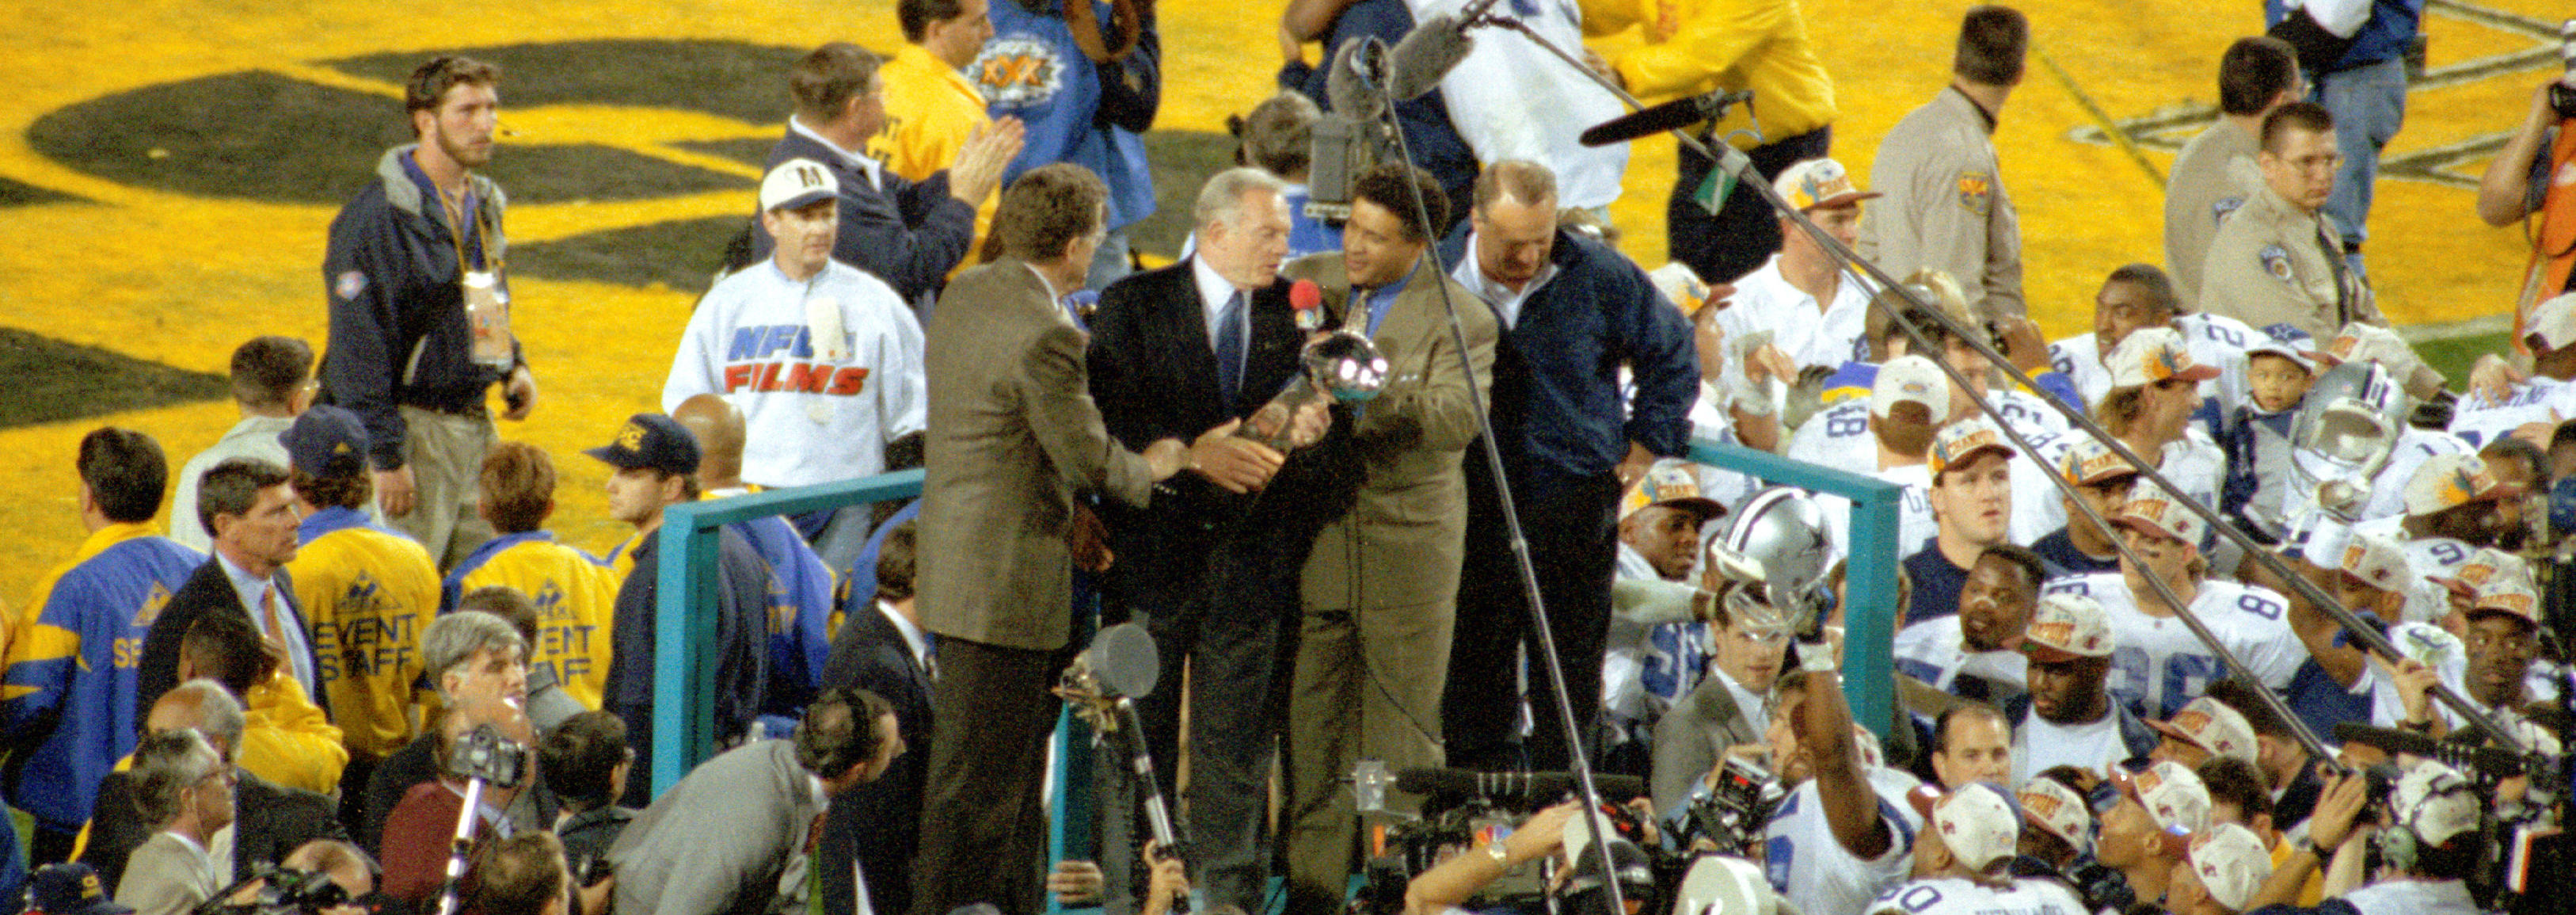 Cowboys Blog - A Dallas Cowboys Super Bowl: How Long Has It Been? 5